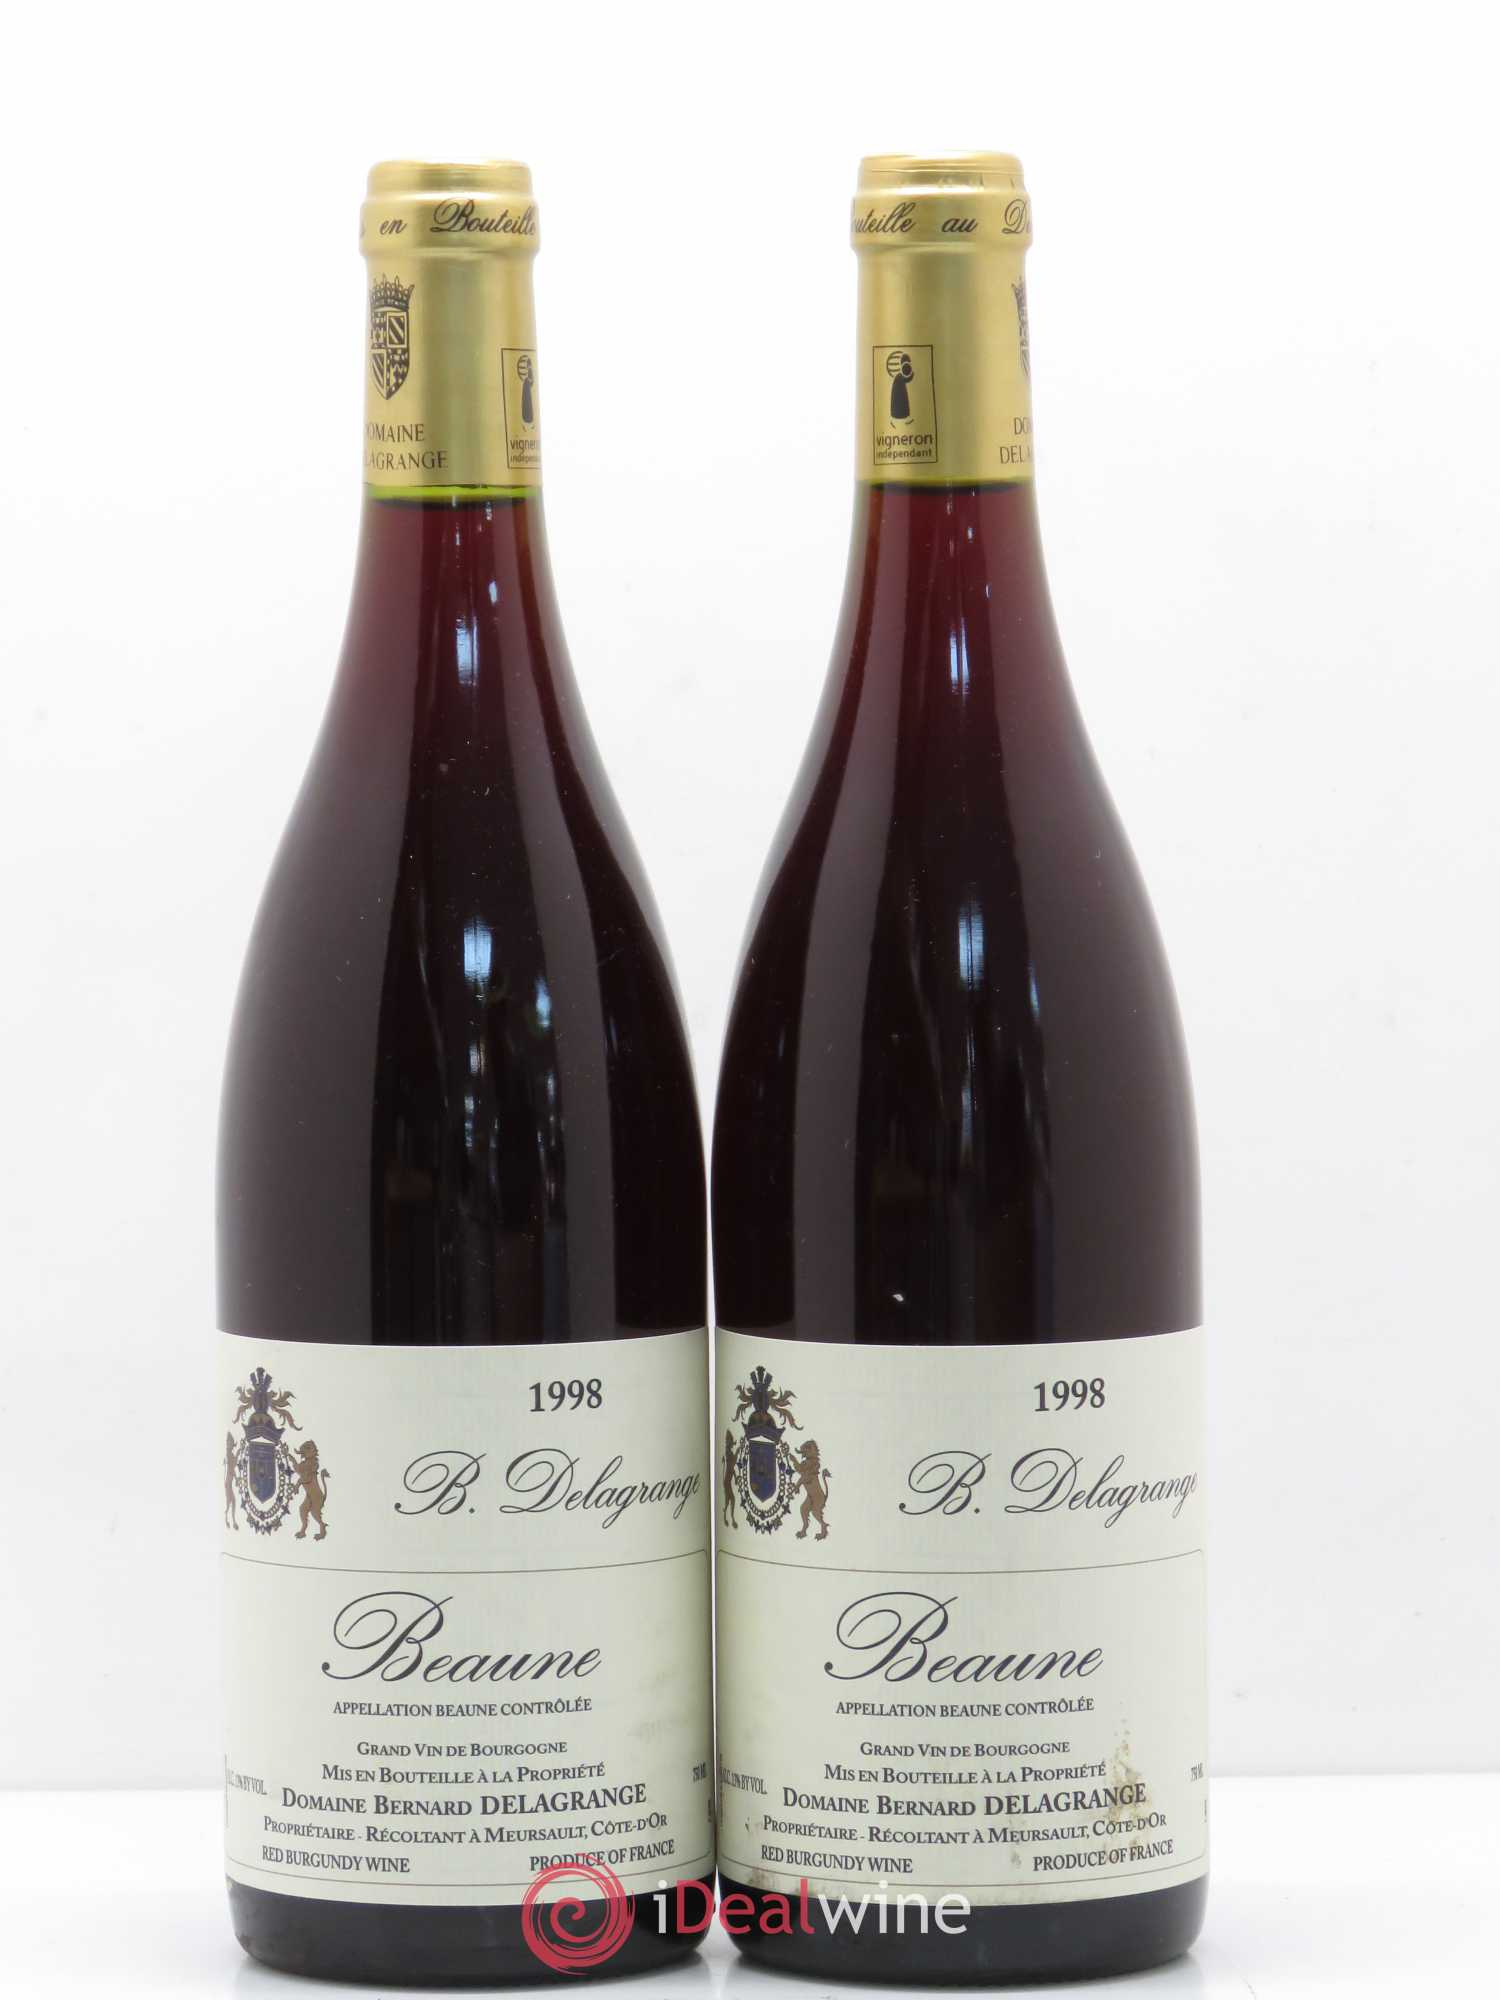 Beaune Domaine Bernard Delagrange (no reserve) 1998 - Lot of 2 Bottles